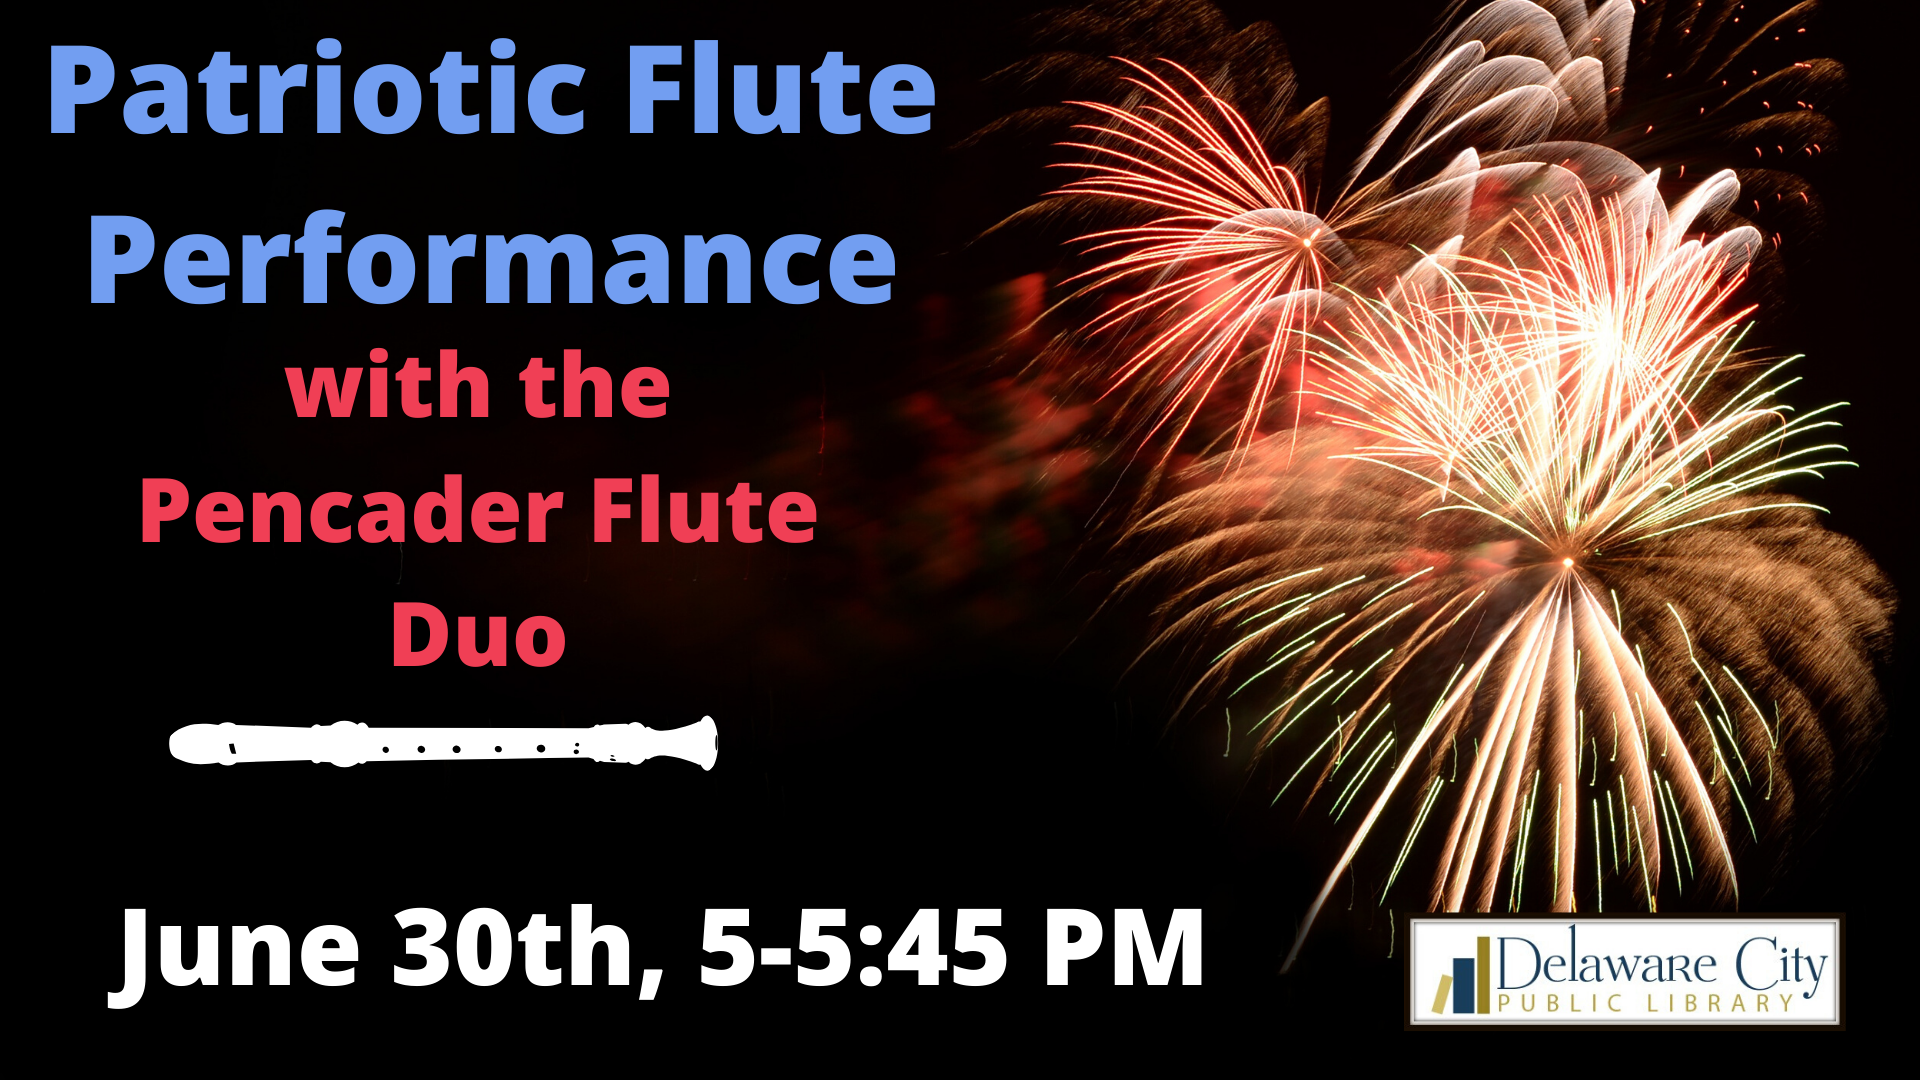 Patriotic Flute Performance with the Pencader Flute Duo